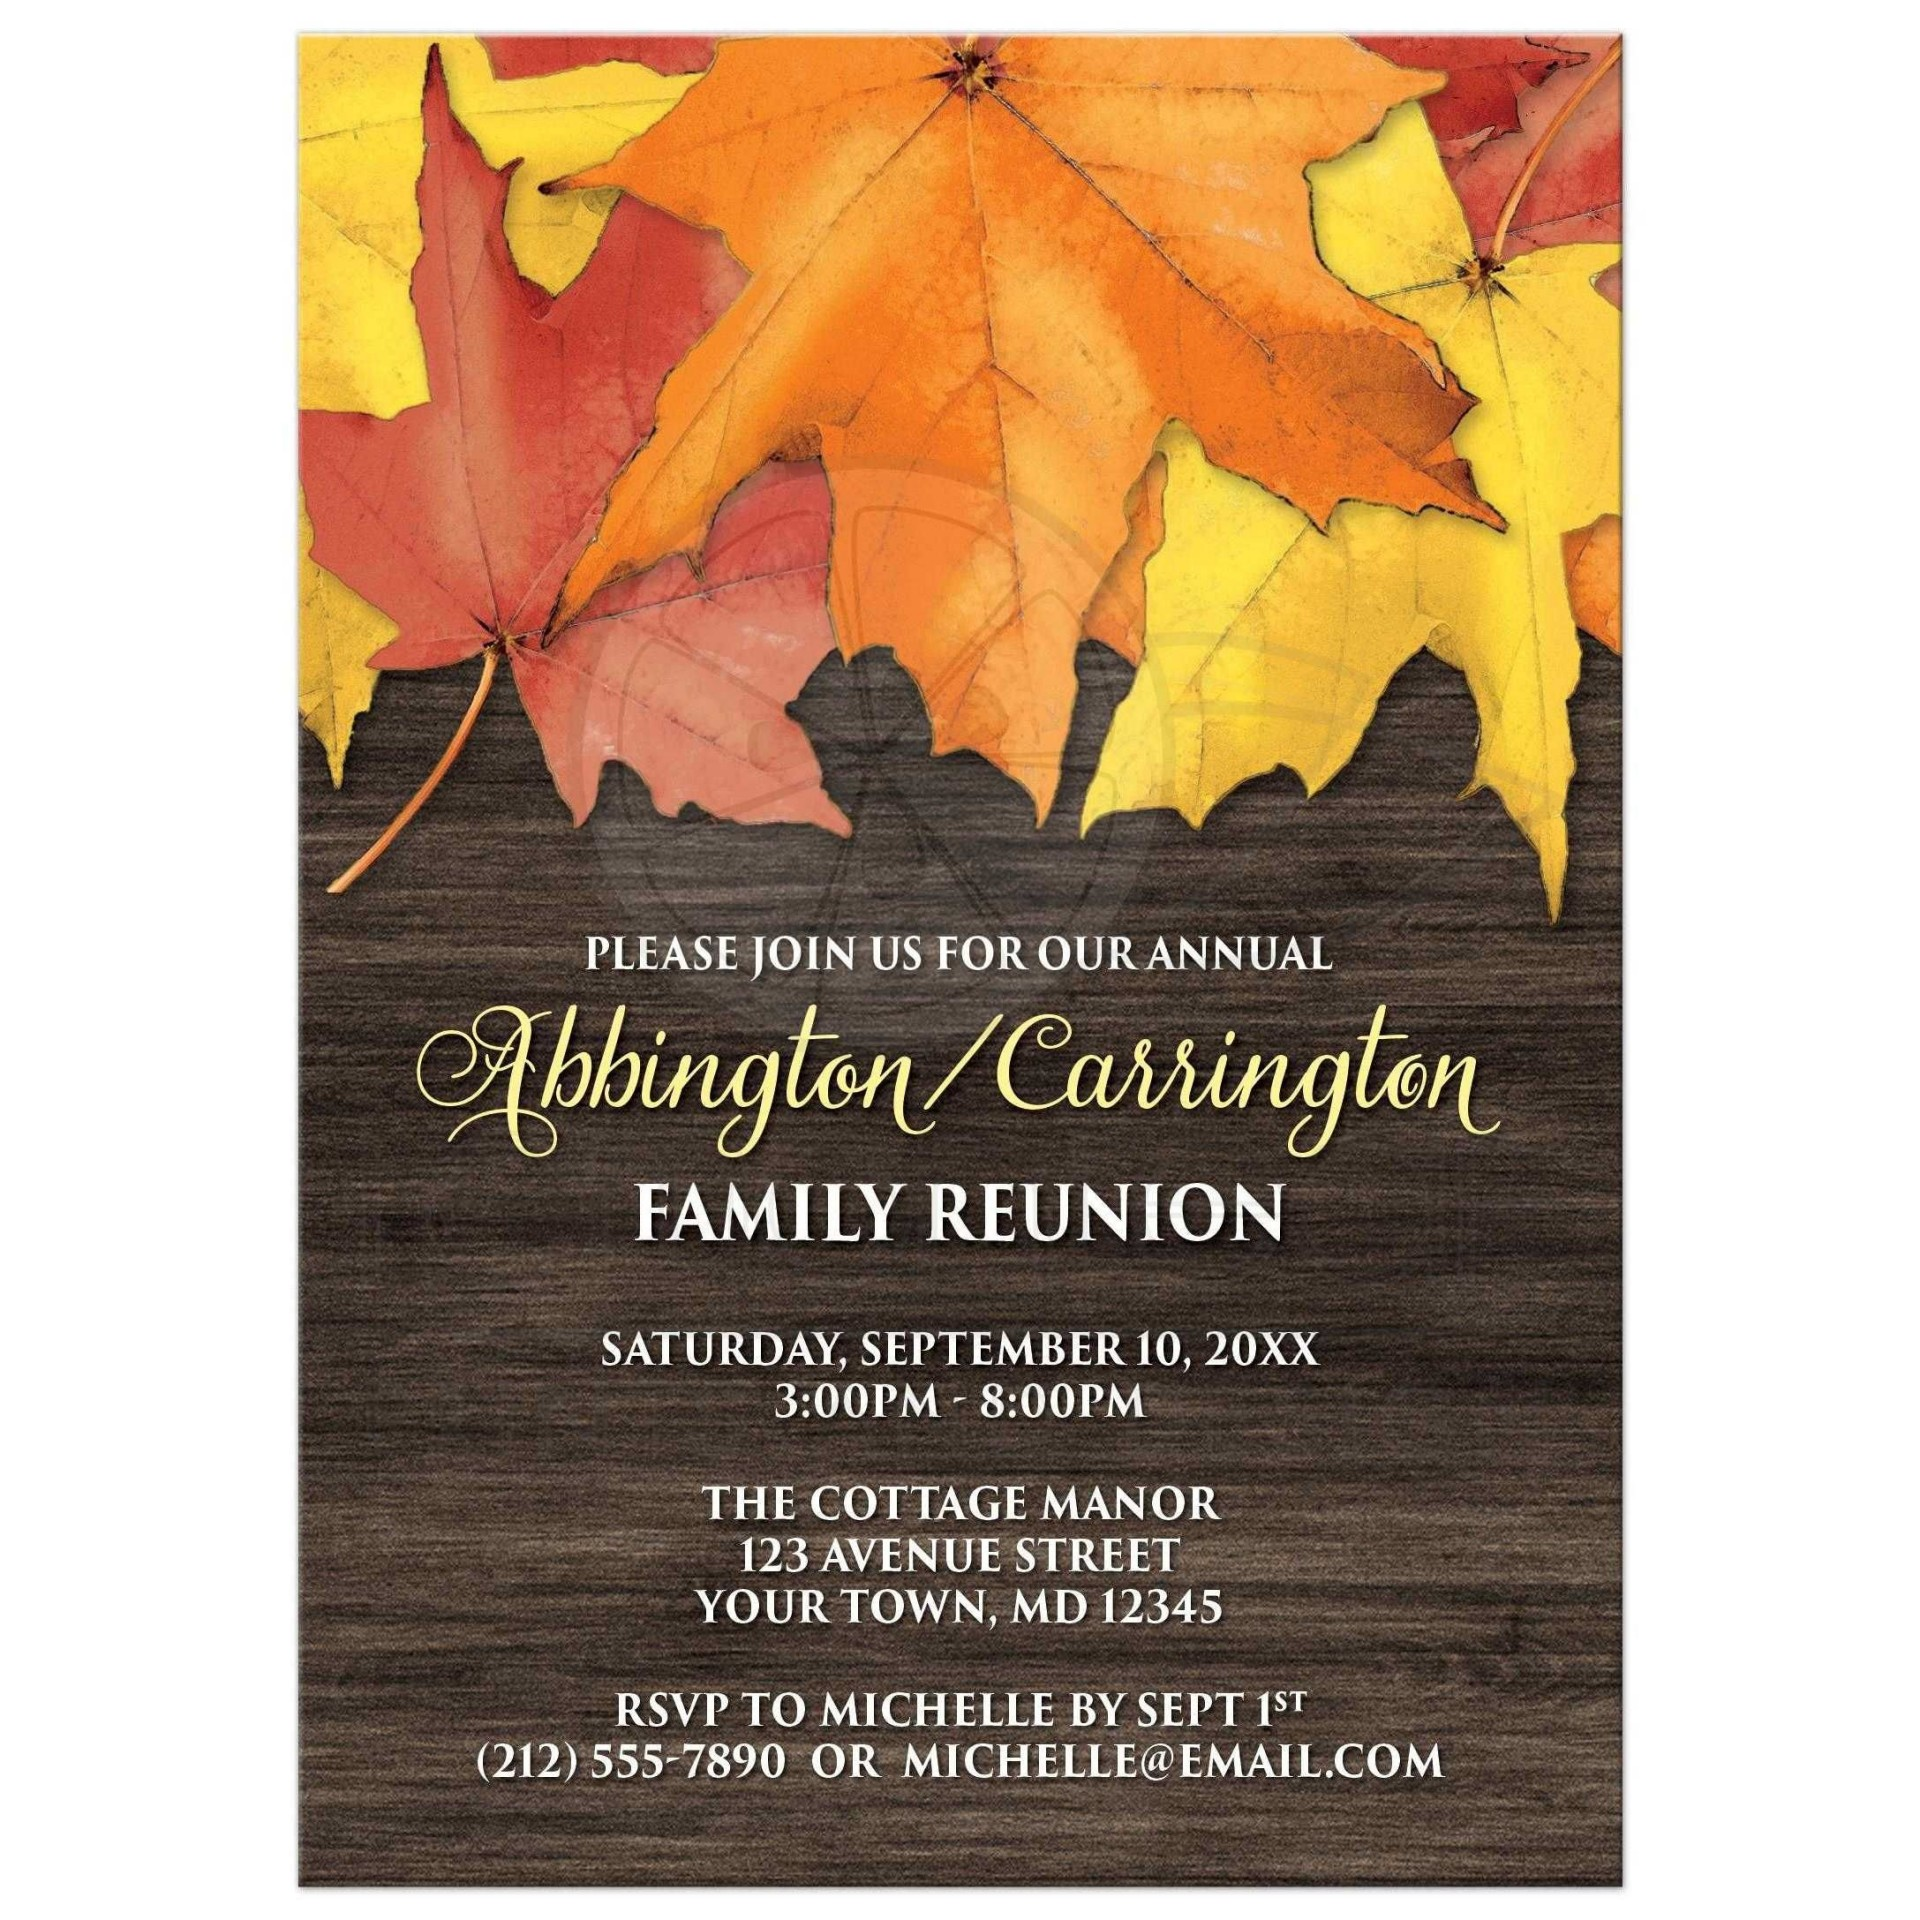 002 Exceptional Family Reunion Invitation Card Template High Def 1920